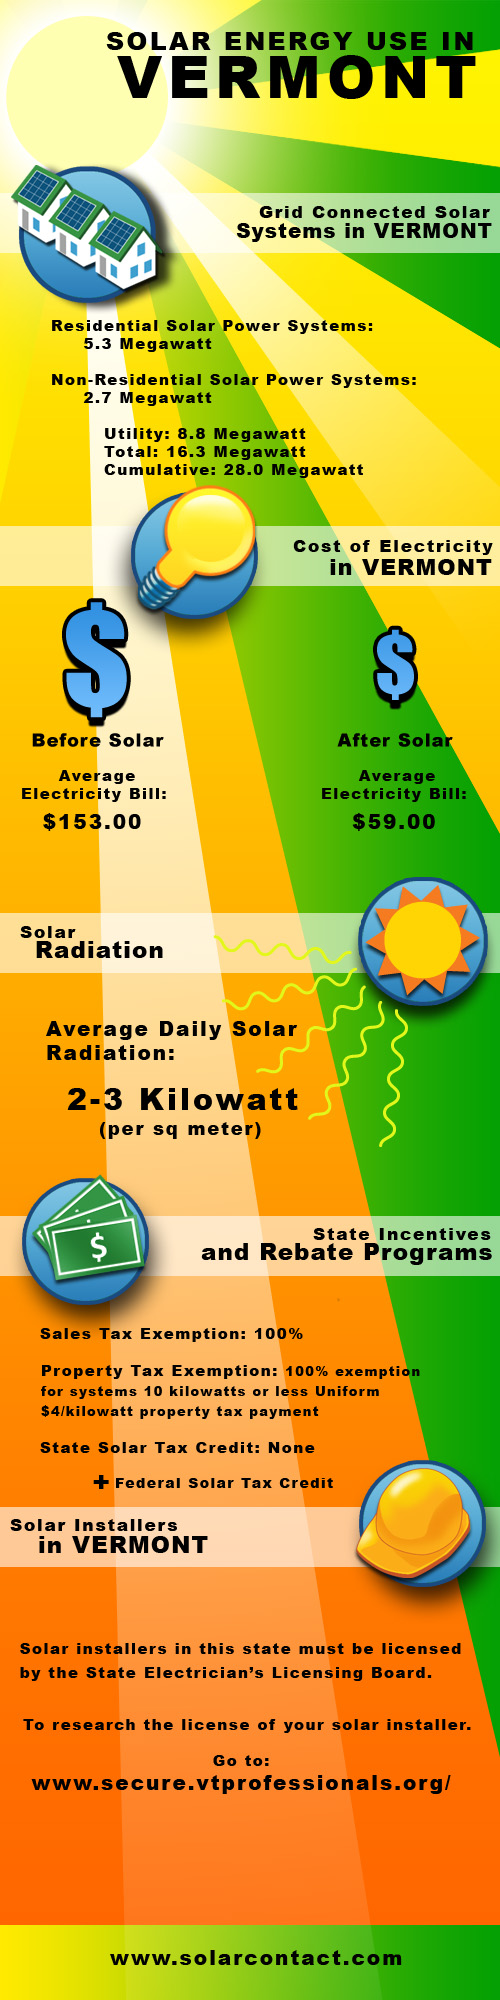 Fact Sheet Solar Energy Use in Vermont